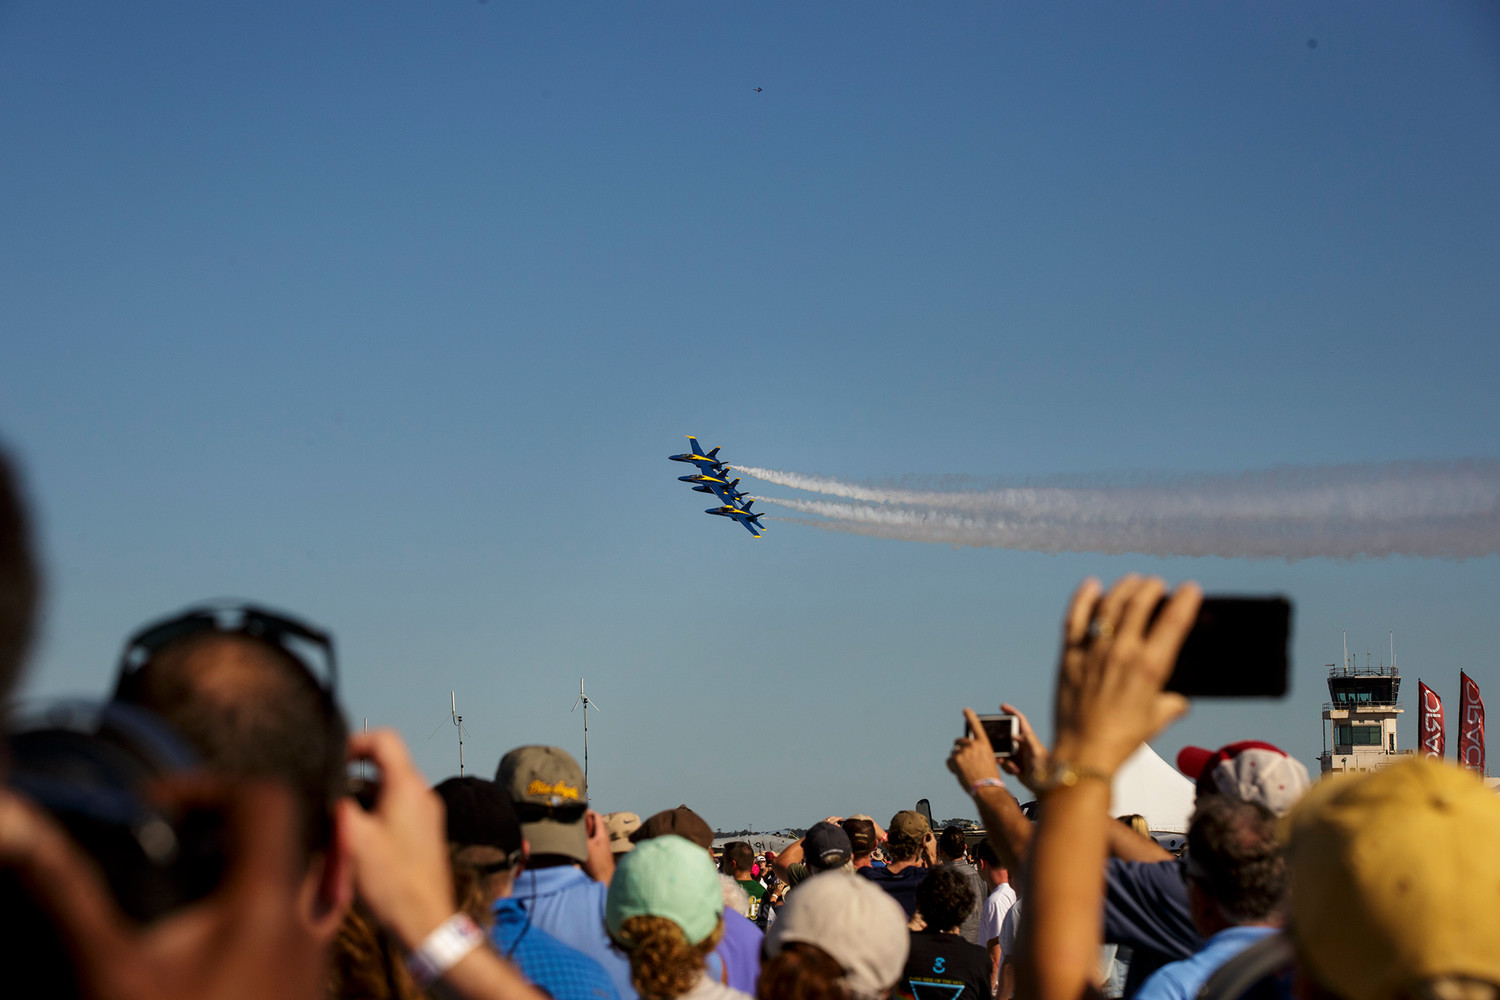 Fans film on their phones and cameras as the Blue Angels diamond formation buzzes over the crowd last week during the Naval Air Station Jacksonville Air Show at the base.